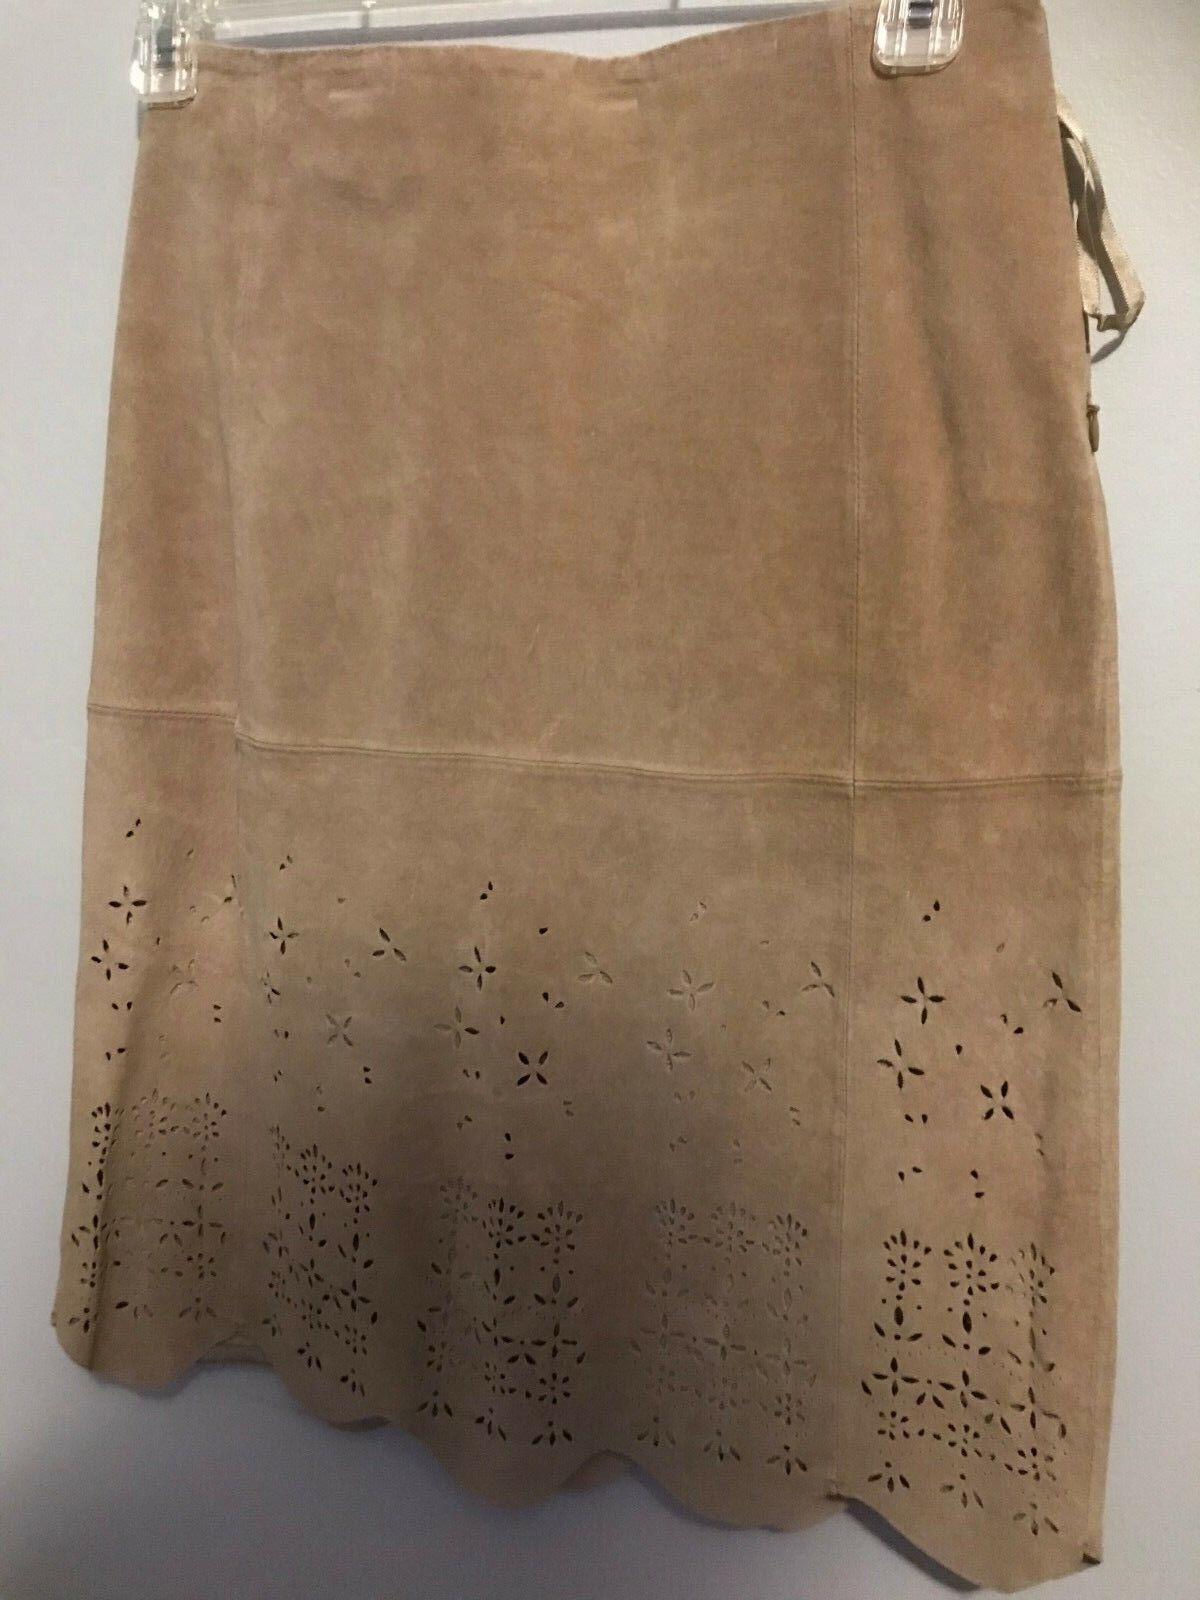 J Marco Catalog Tan Suede Cut Out Skirt - Size 8